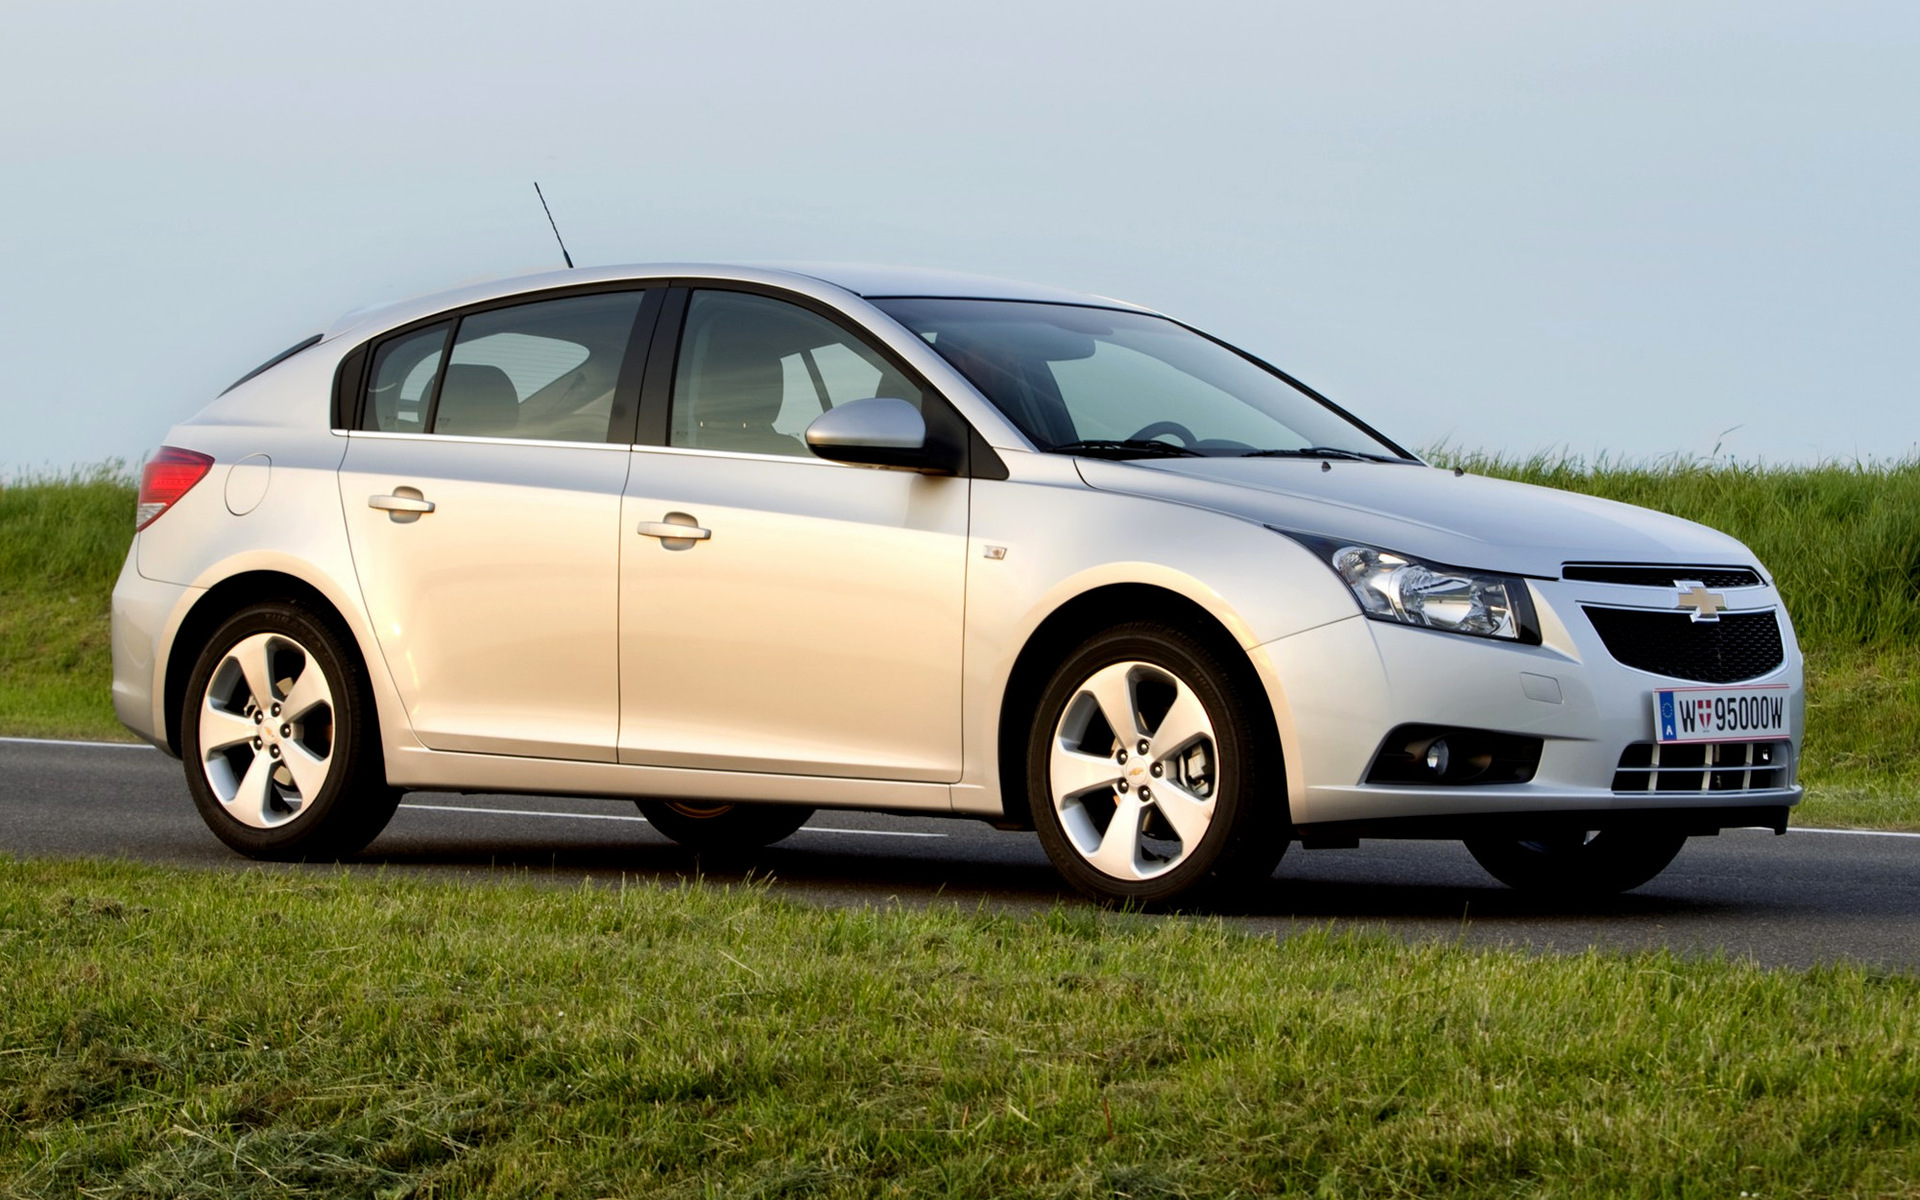 Chevrolet Cruze Hatchback (2011) Wallpapers And HD Images